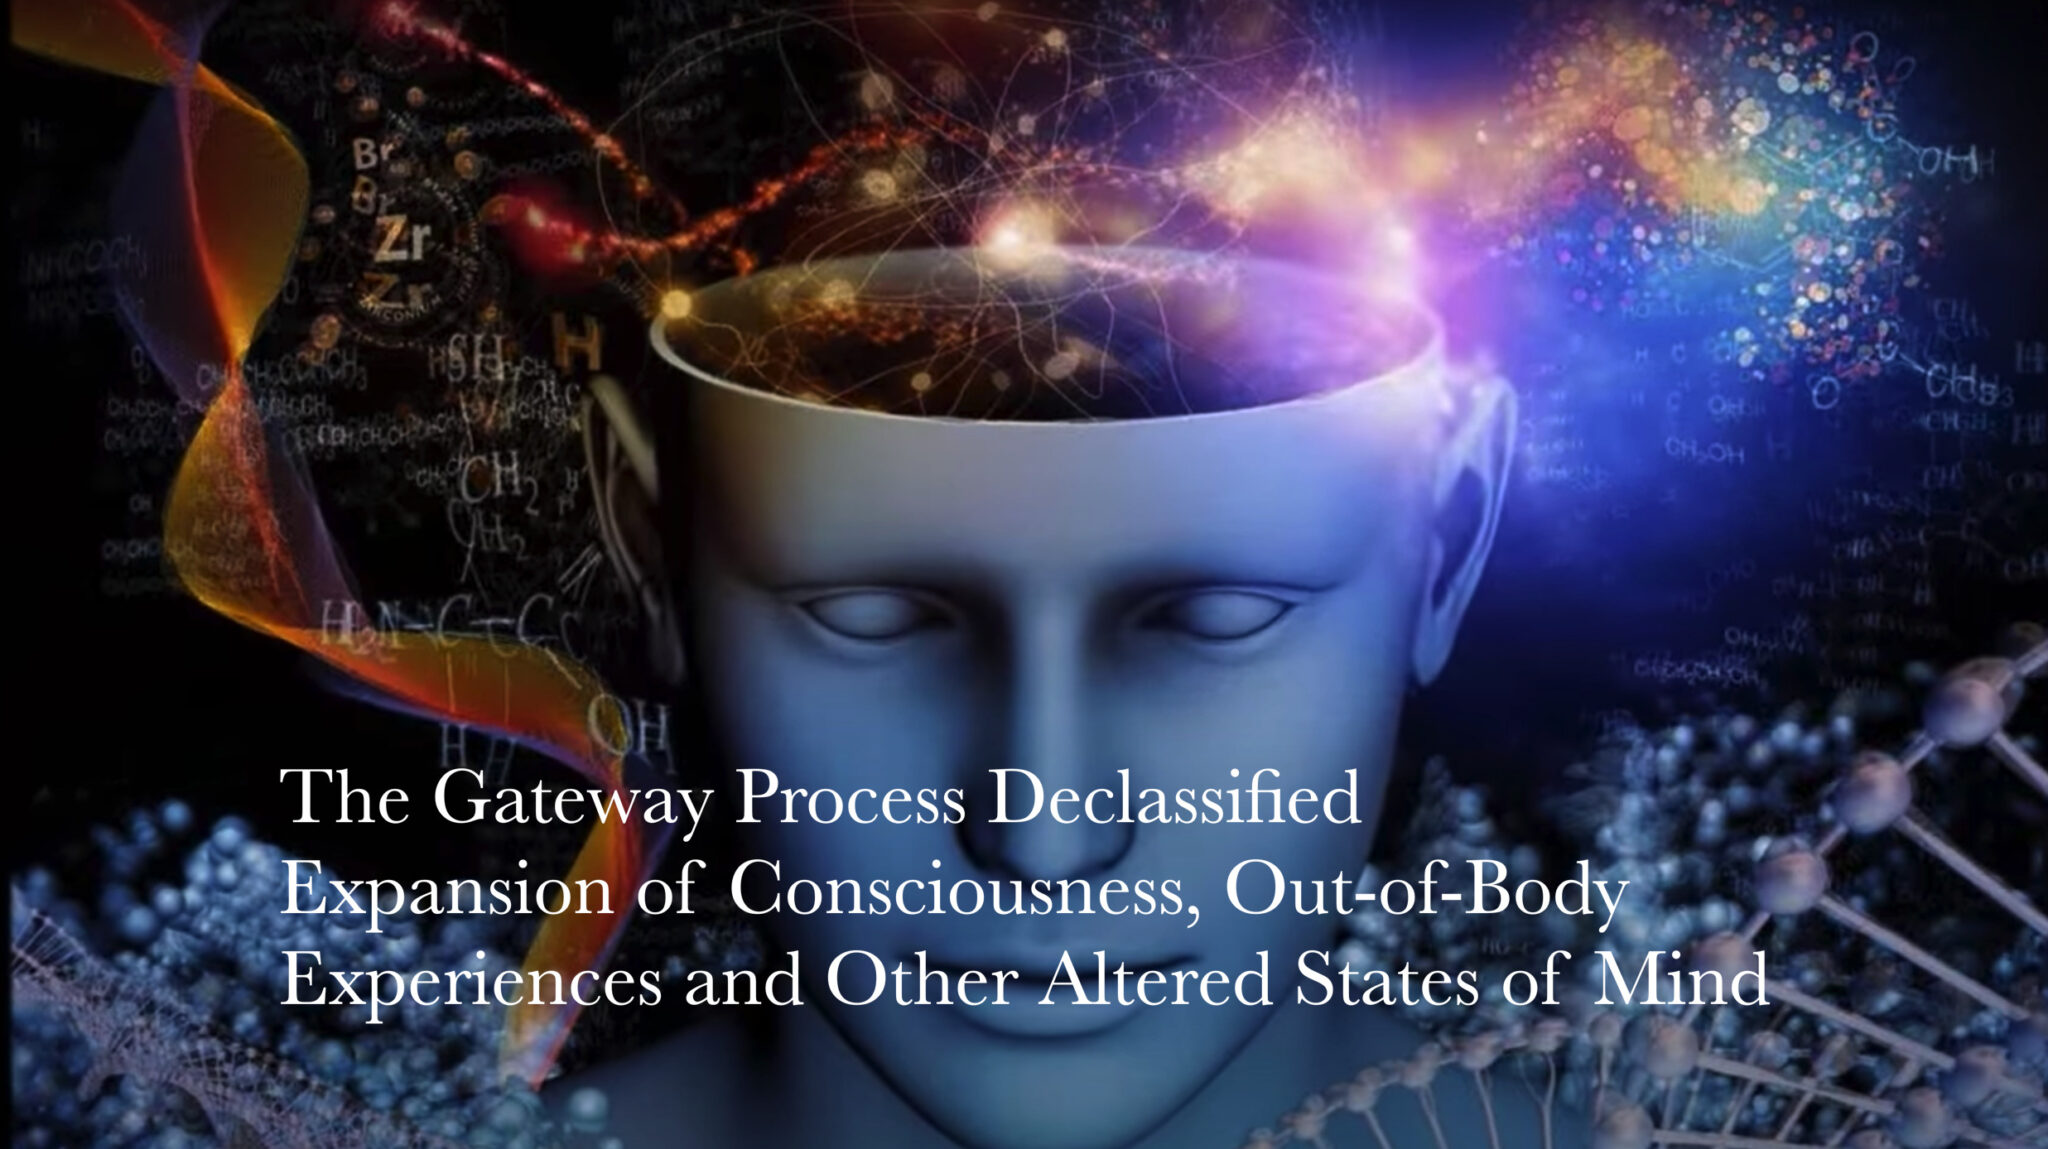 You are currently viewing The Gateway Process Declassified: Expansion of Consciousness, Out-of-Body Experiences and Altered States of Mind